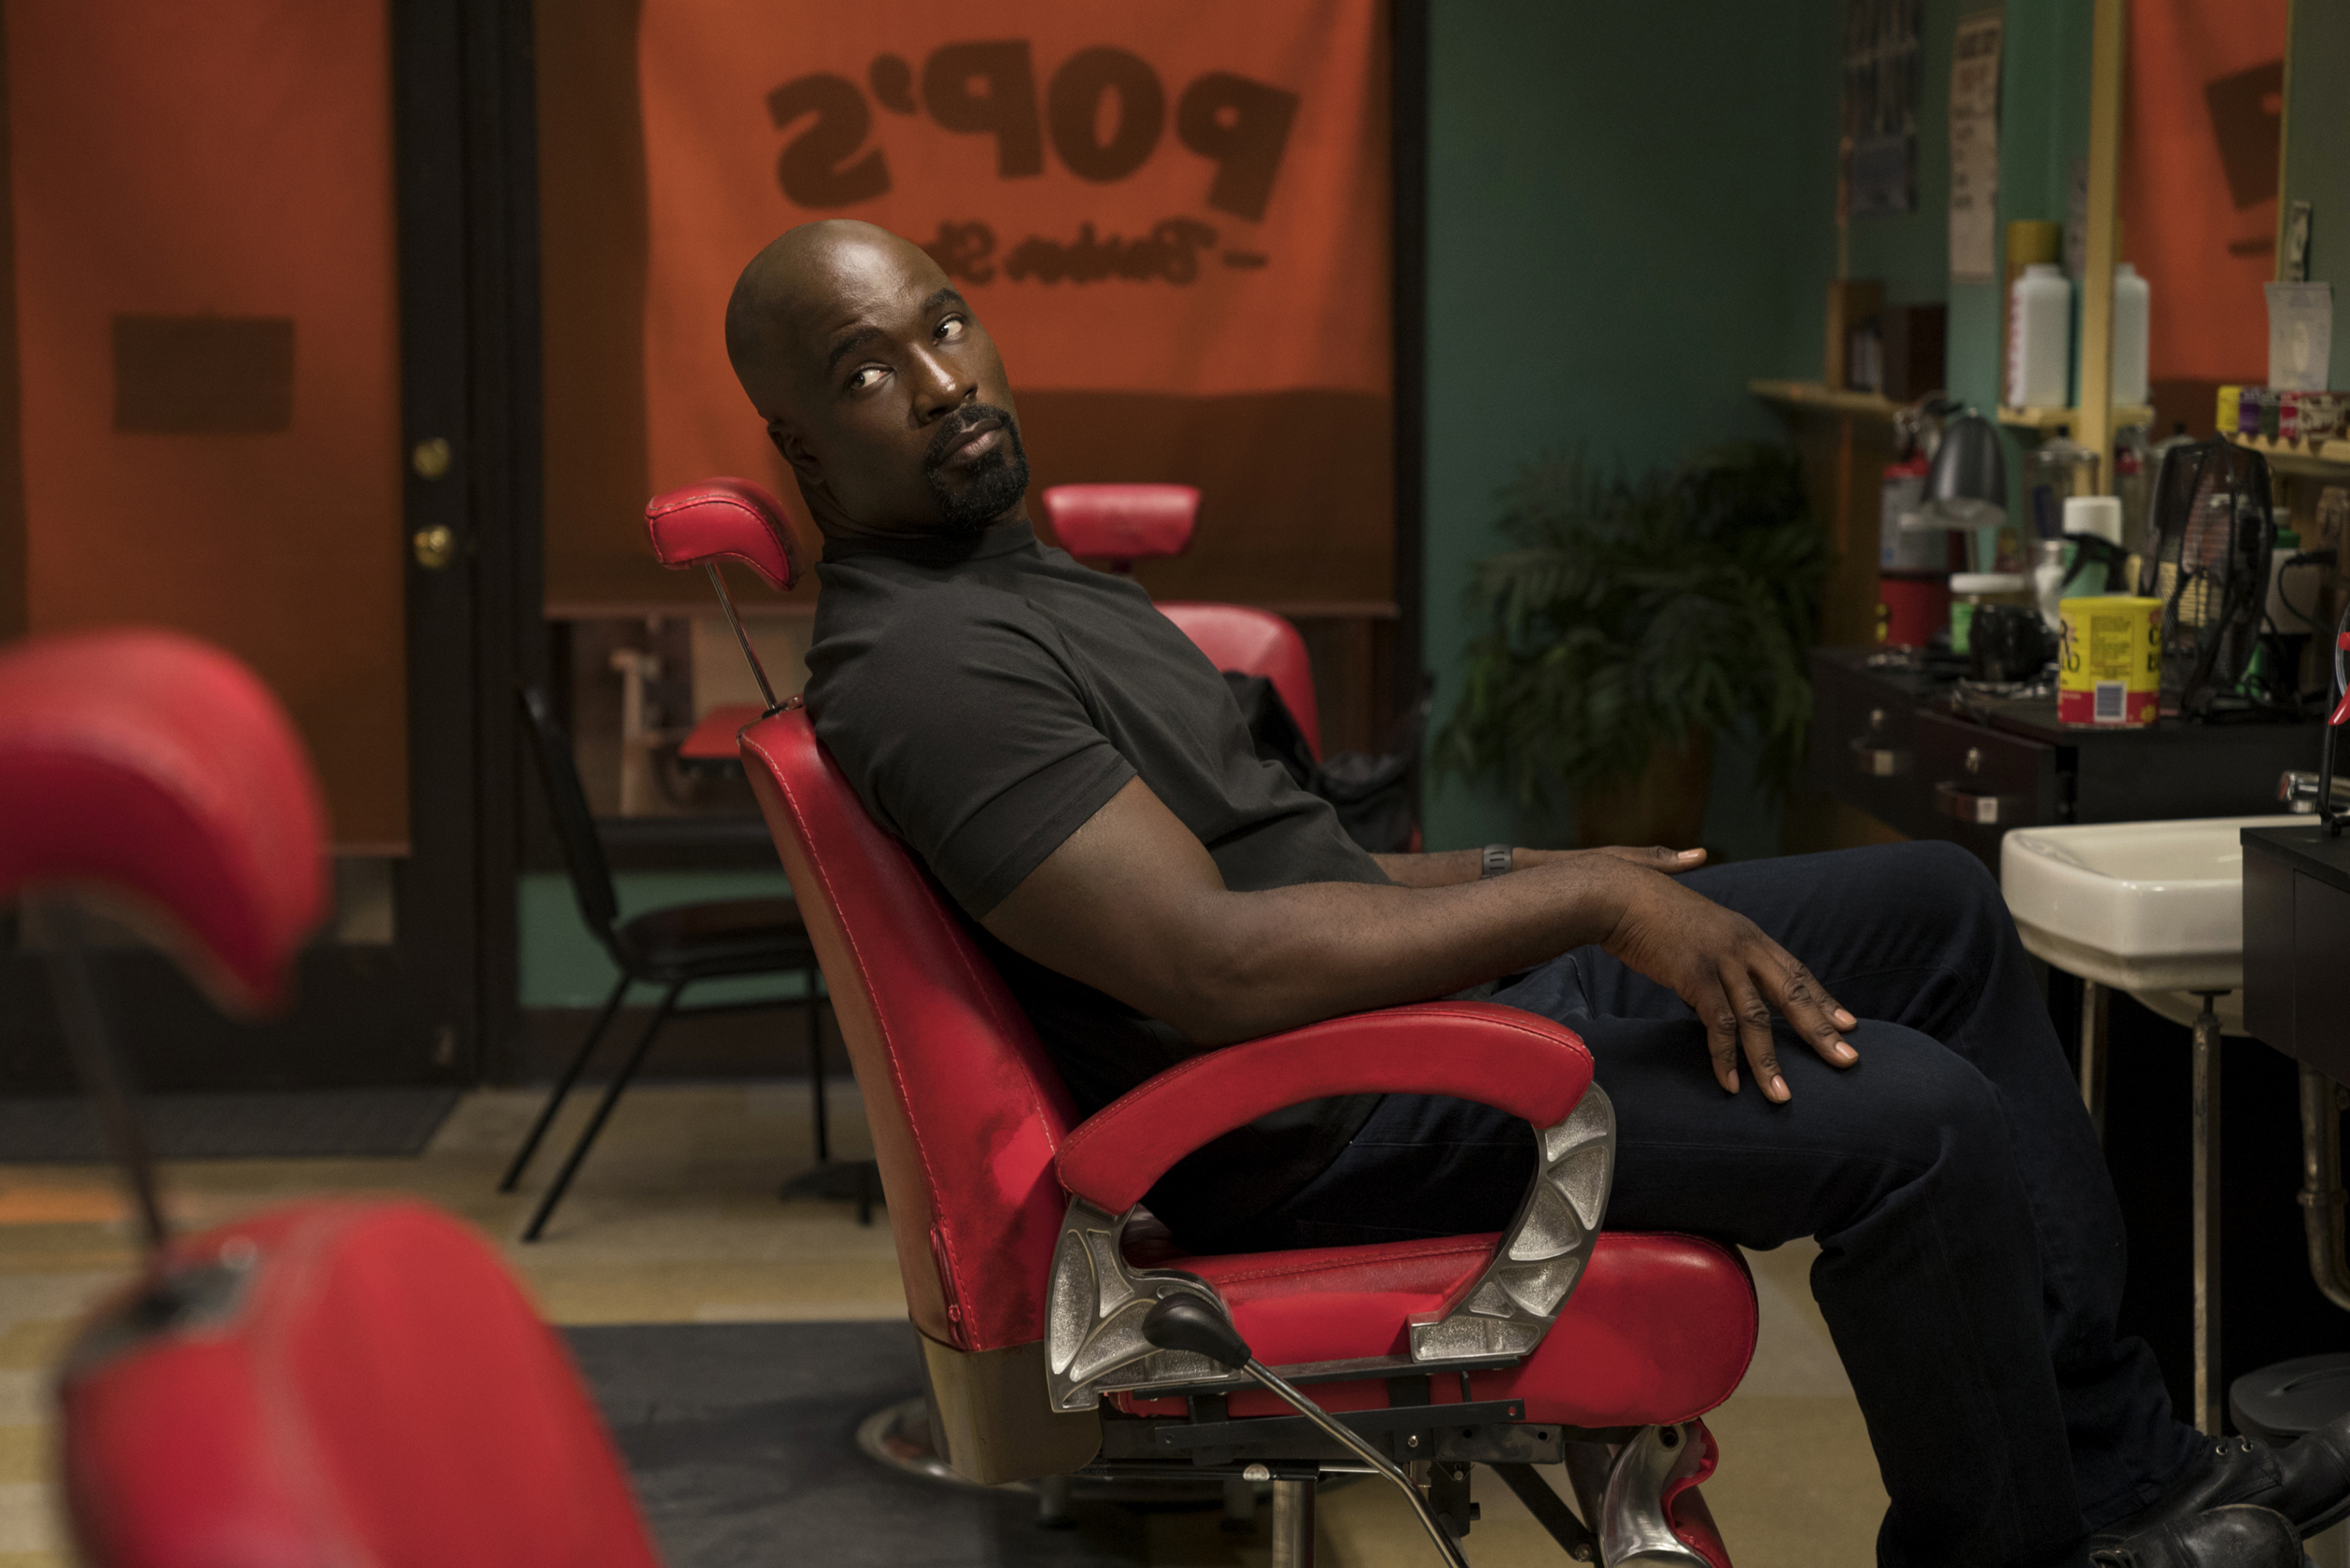 Luke Cage season 3 would have brought the hero full circle, says showrunner